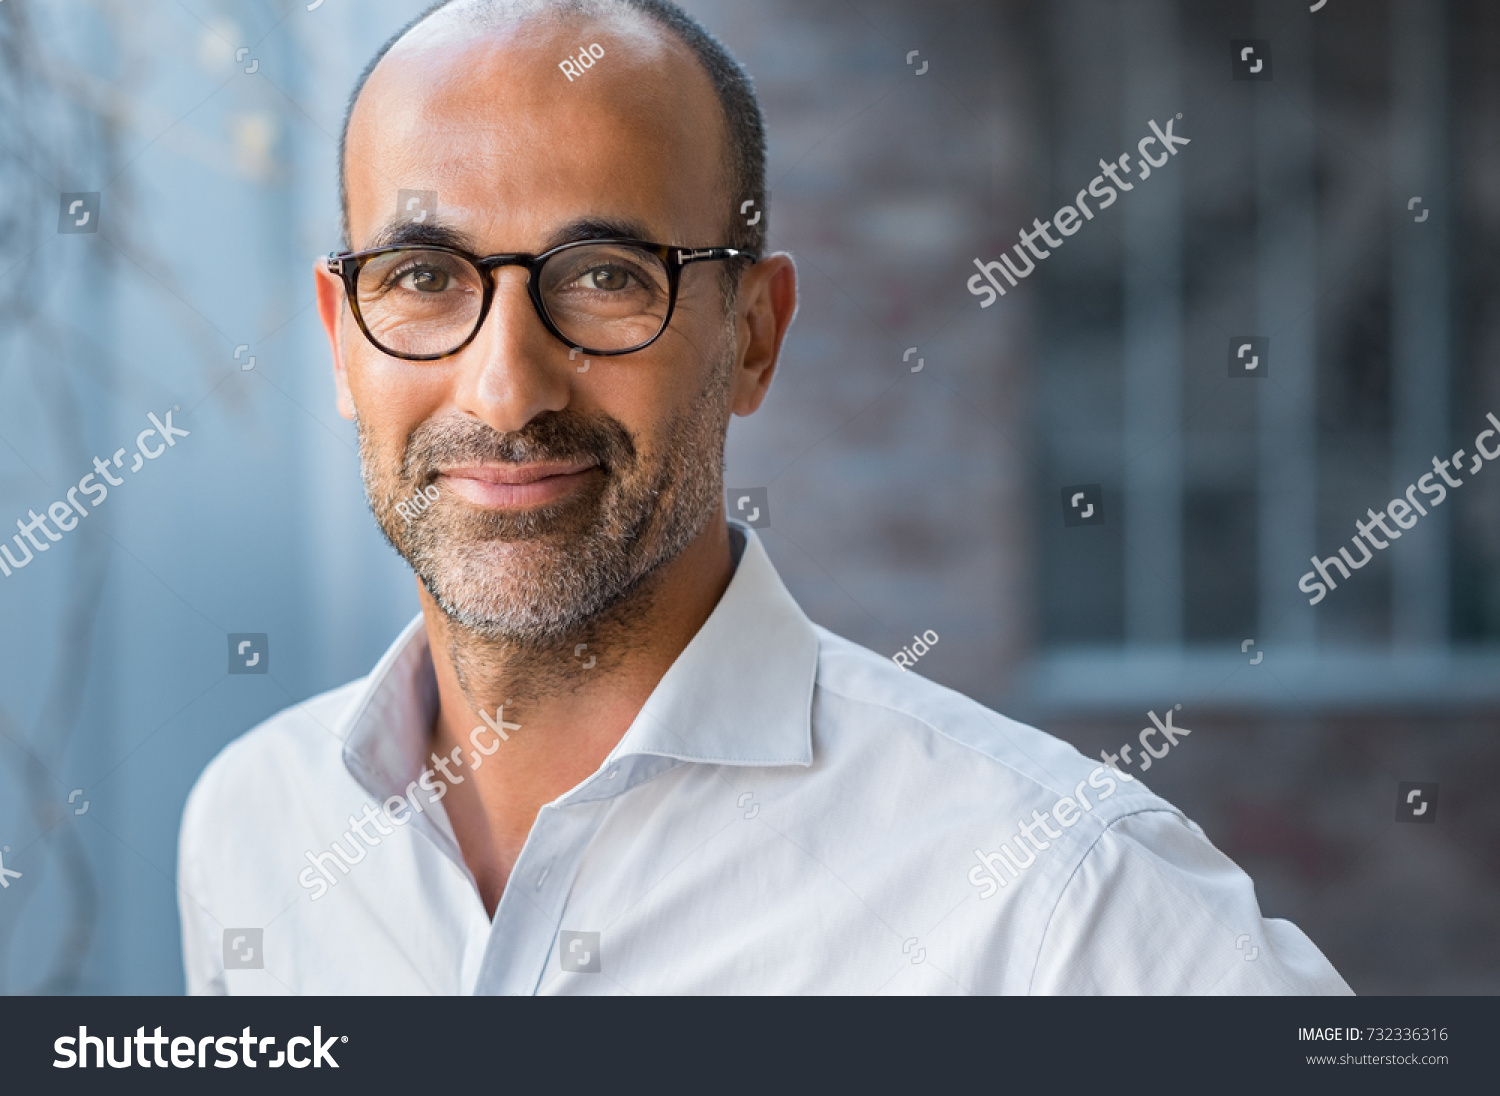 Portrait of happy mature man wearing spectacles and looking at camera outdoor. Man with beard and glasses feeling confident. Close up face of hispanic business man smiling. #732336316 - 123PhotoFree.com